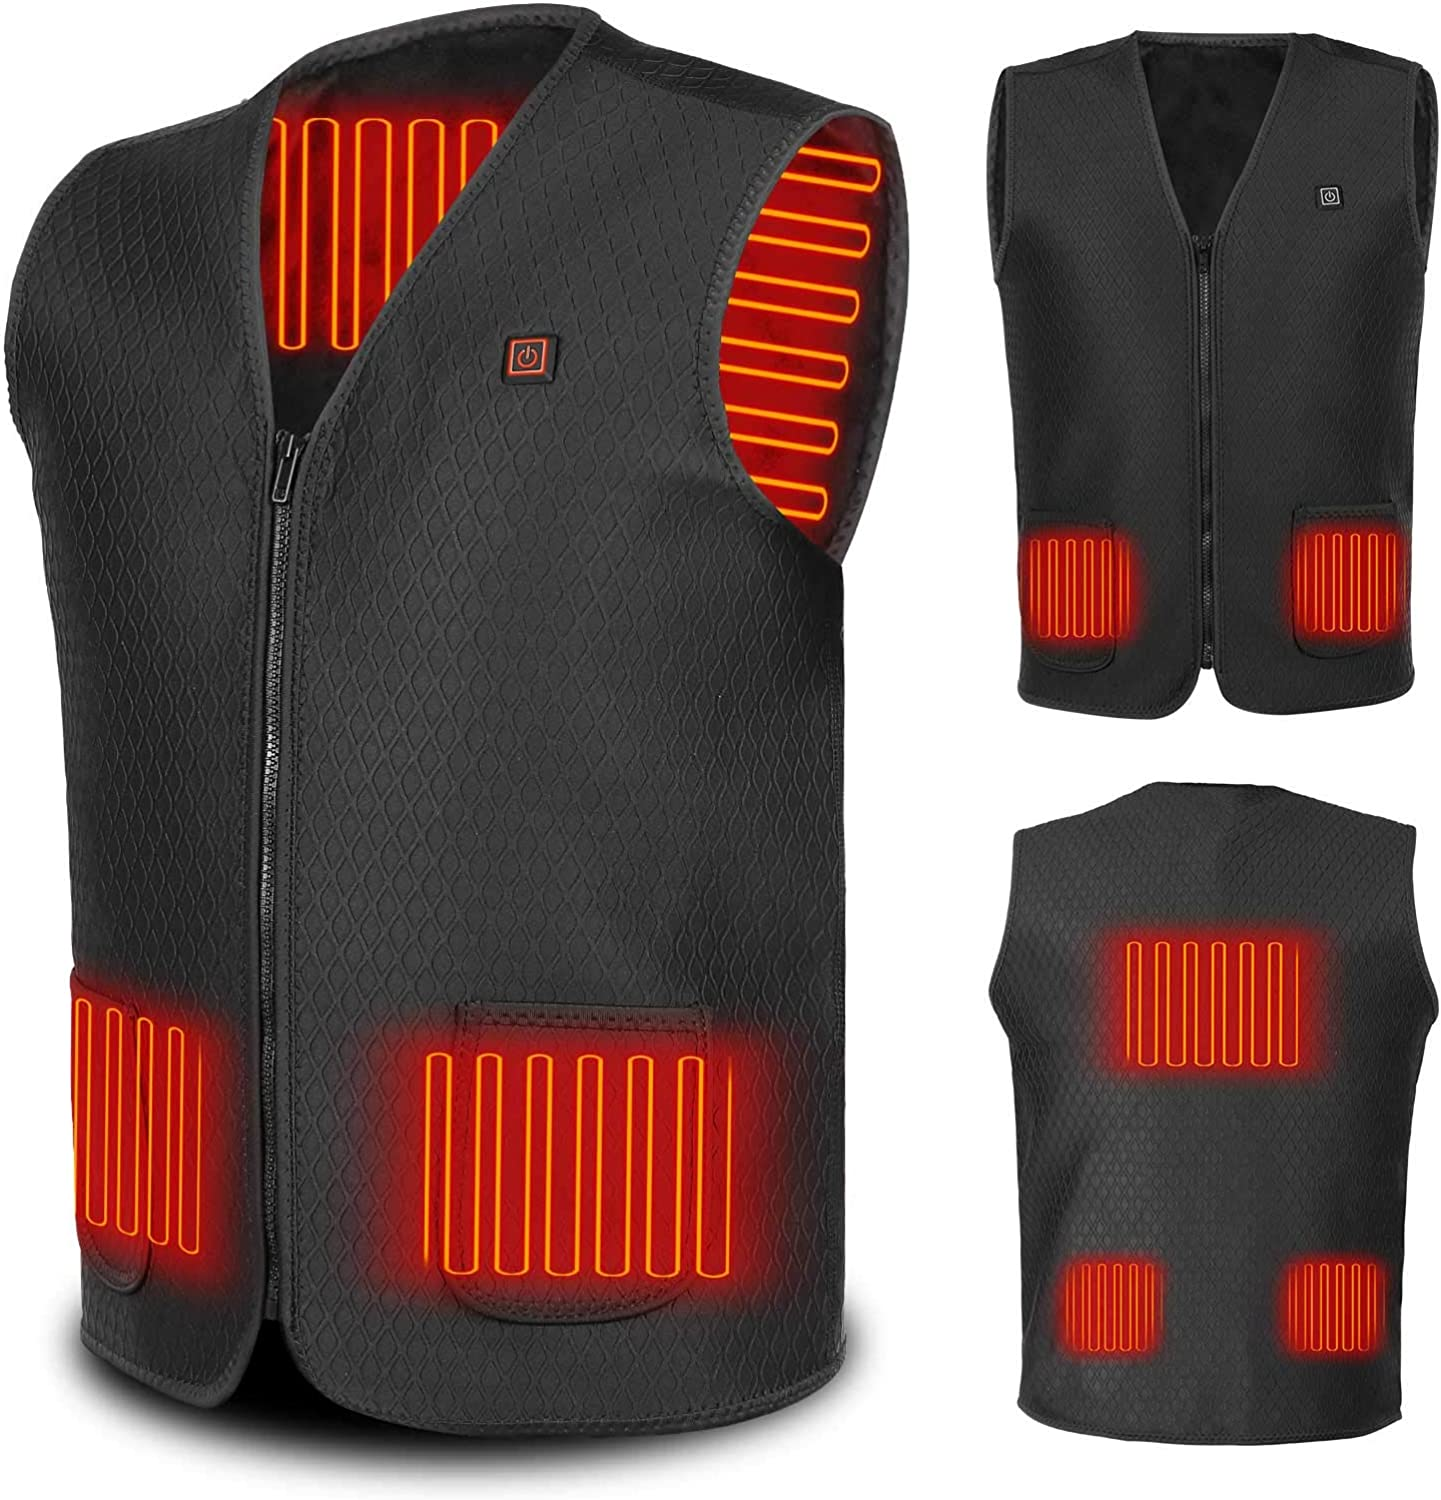 Heated Vest for Men and Women Max 41% OFF Washable Jacket Ou USB Powered Spring new work one after another